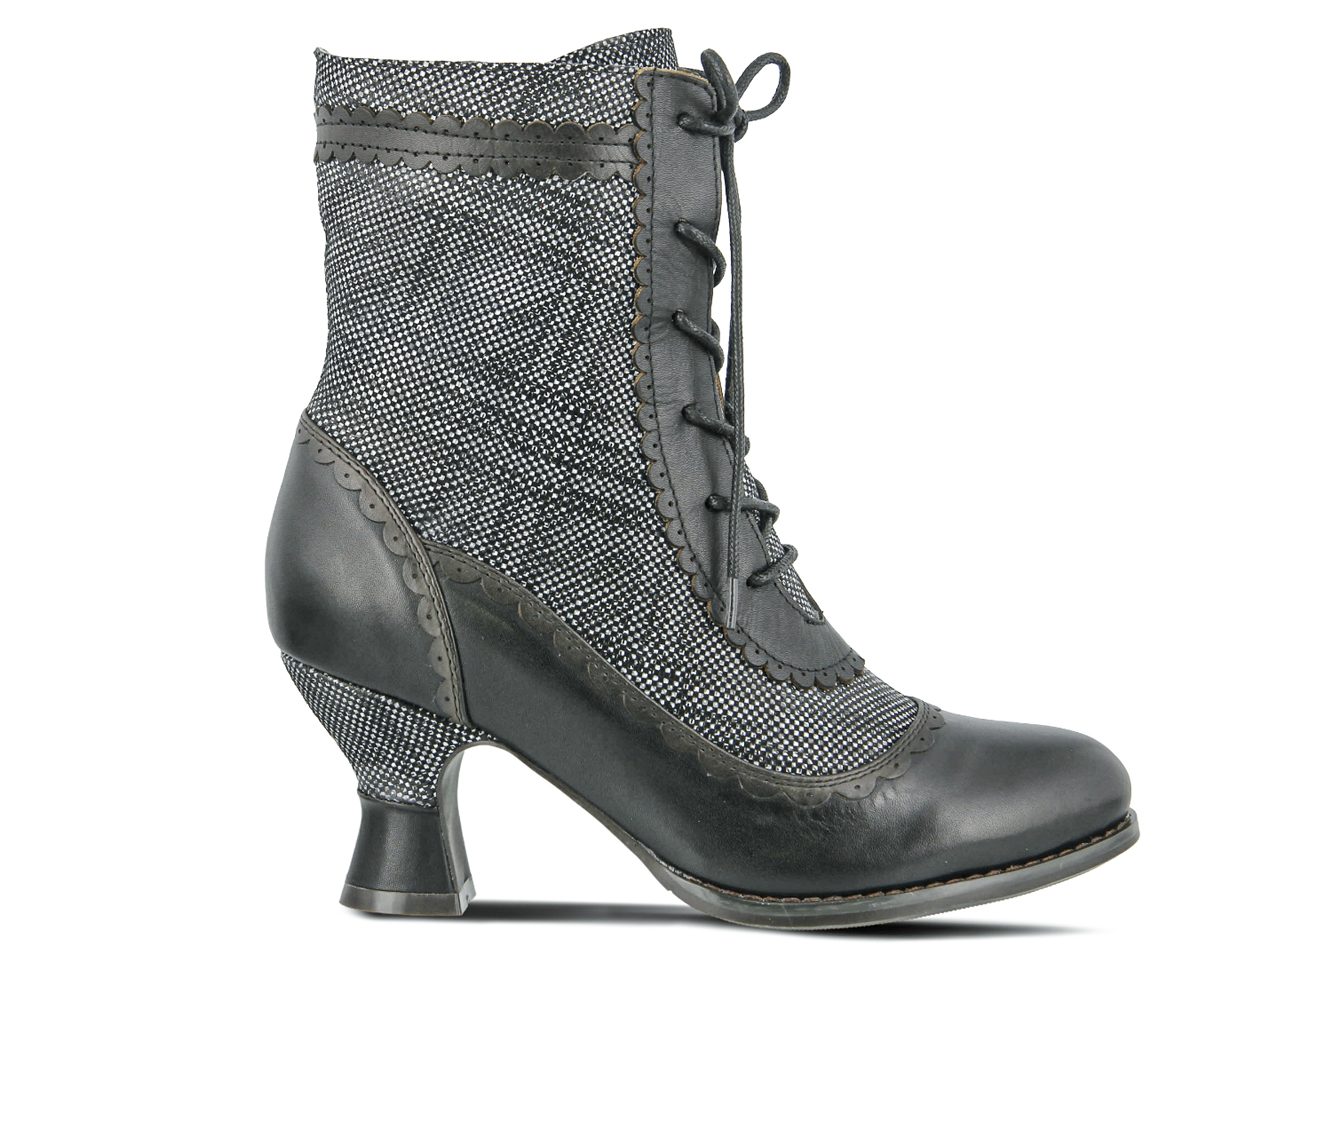 L'Artiste Bewitch-Plaid Women's Boots (Black Leather)